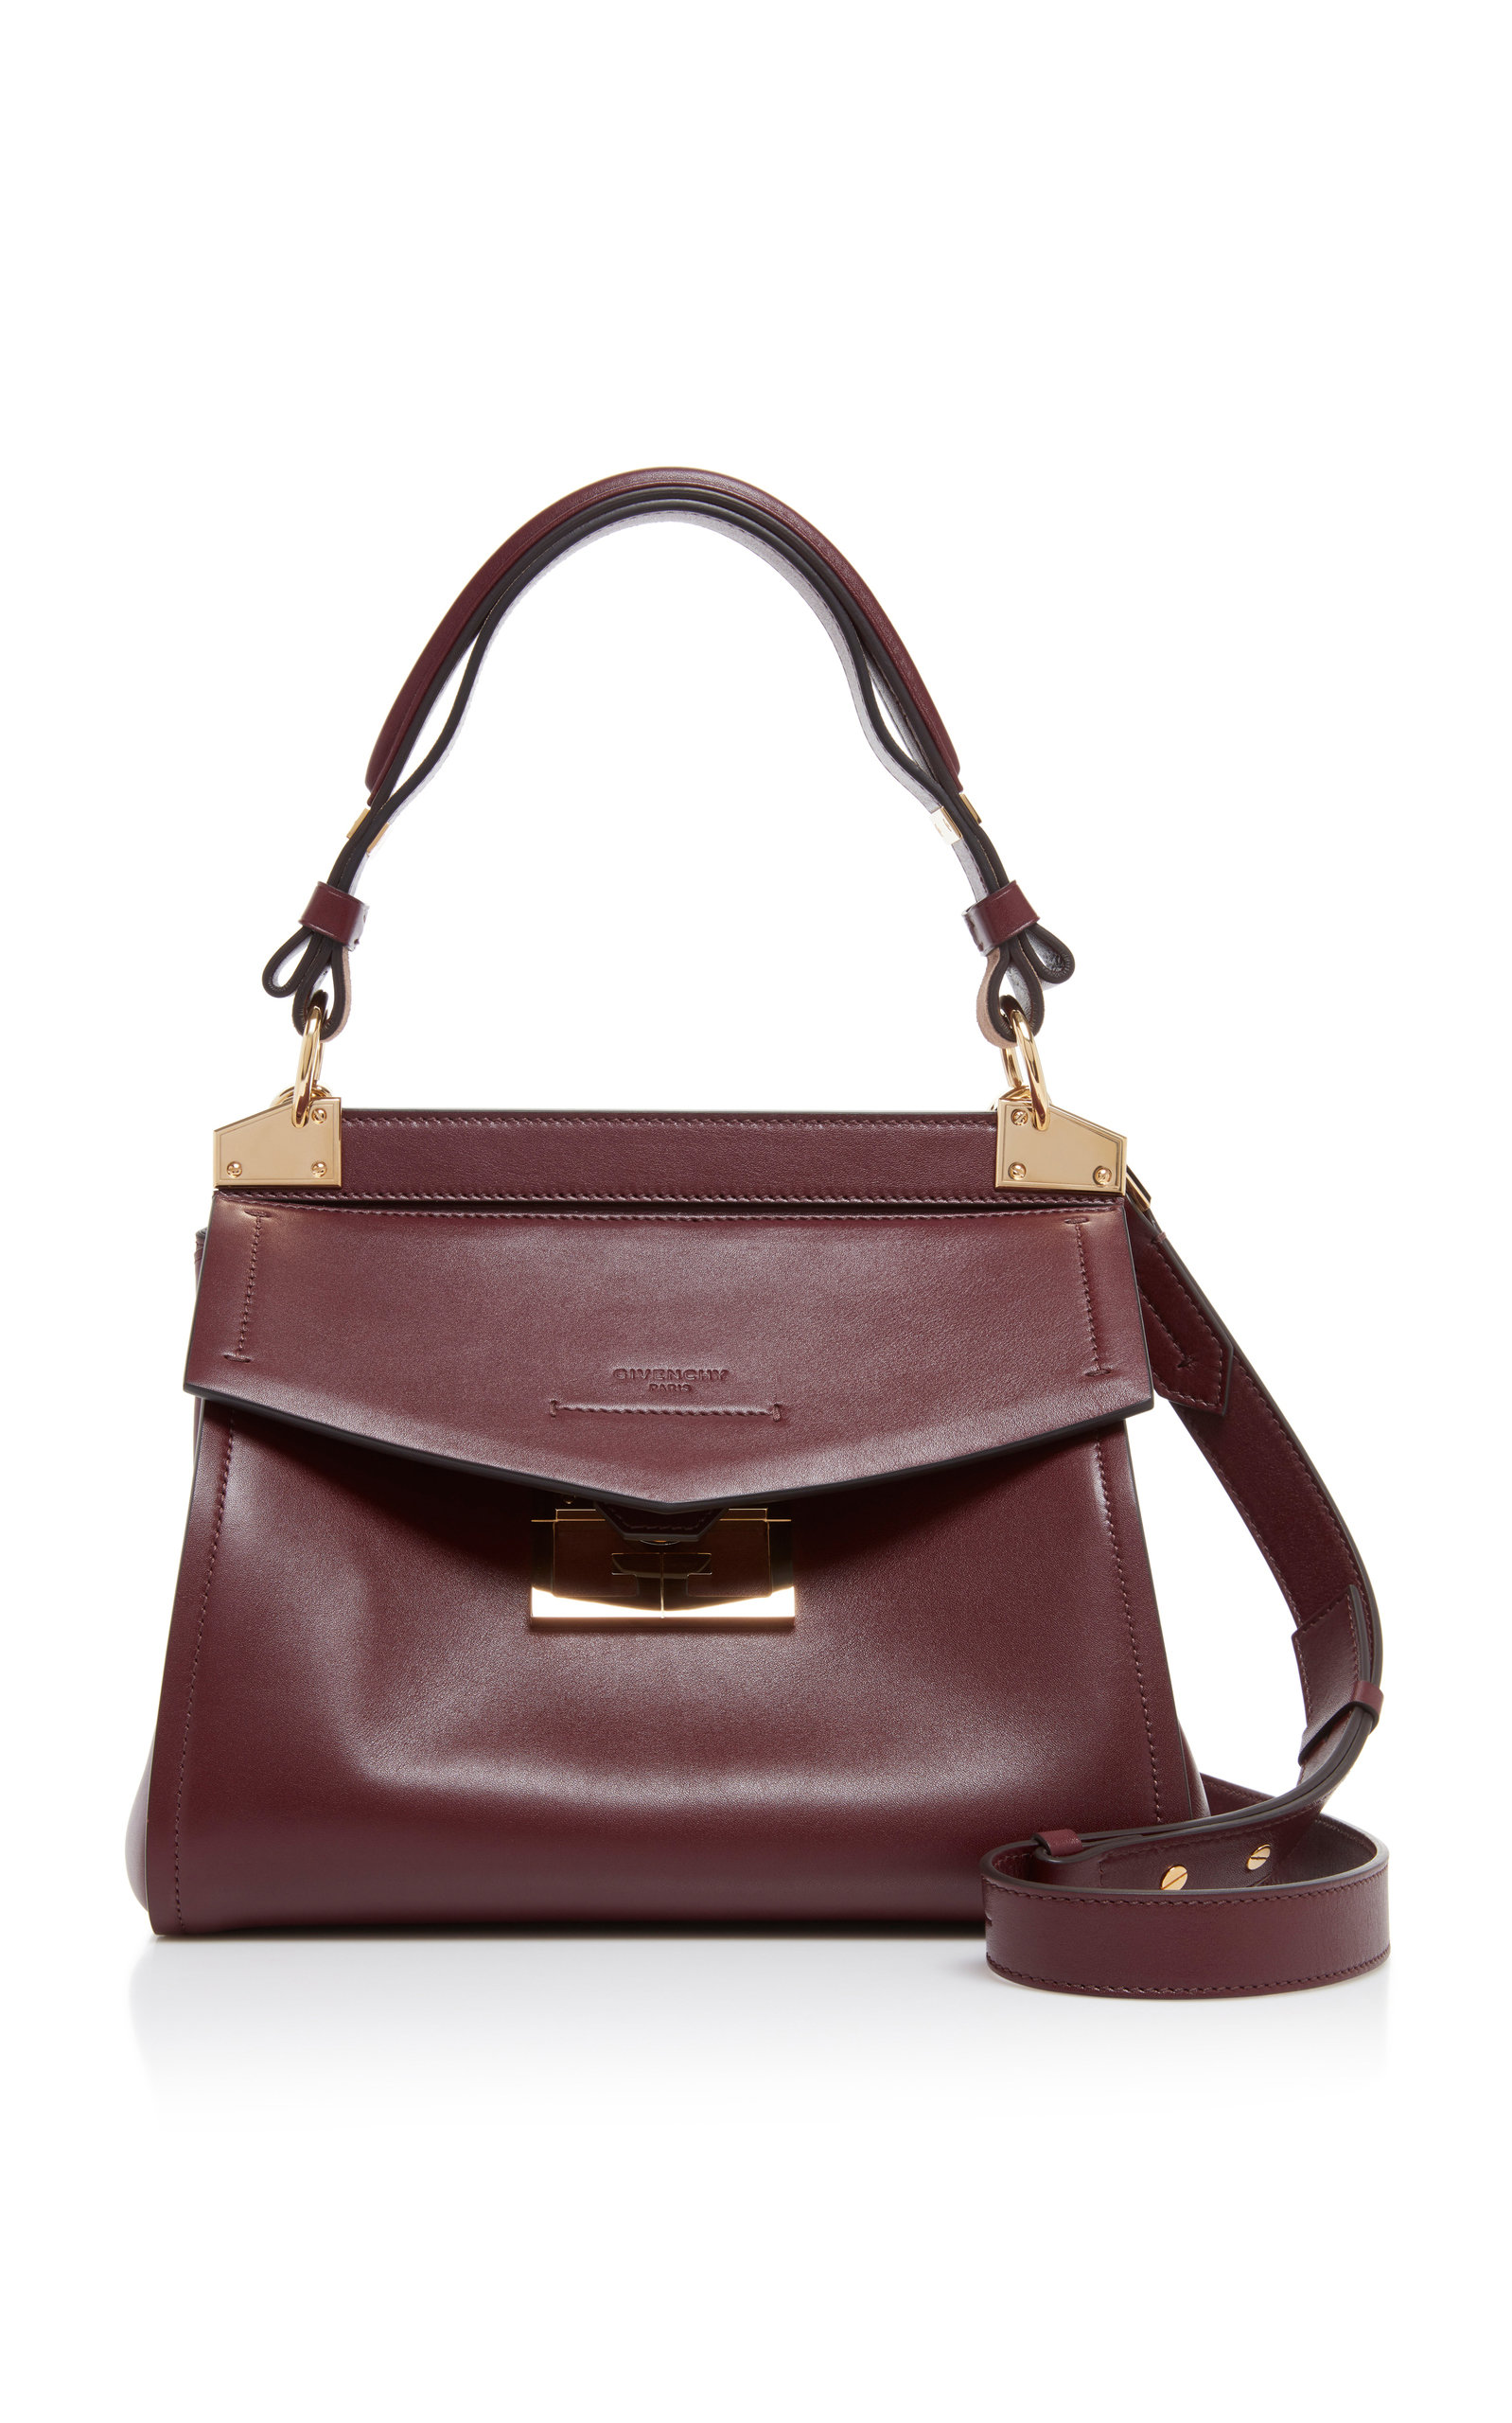 540f23ae9de Mystic Small Leather Bag by Givenchy | Moda Operandi